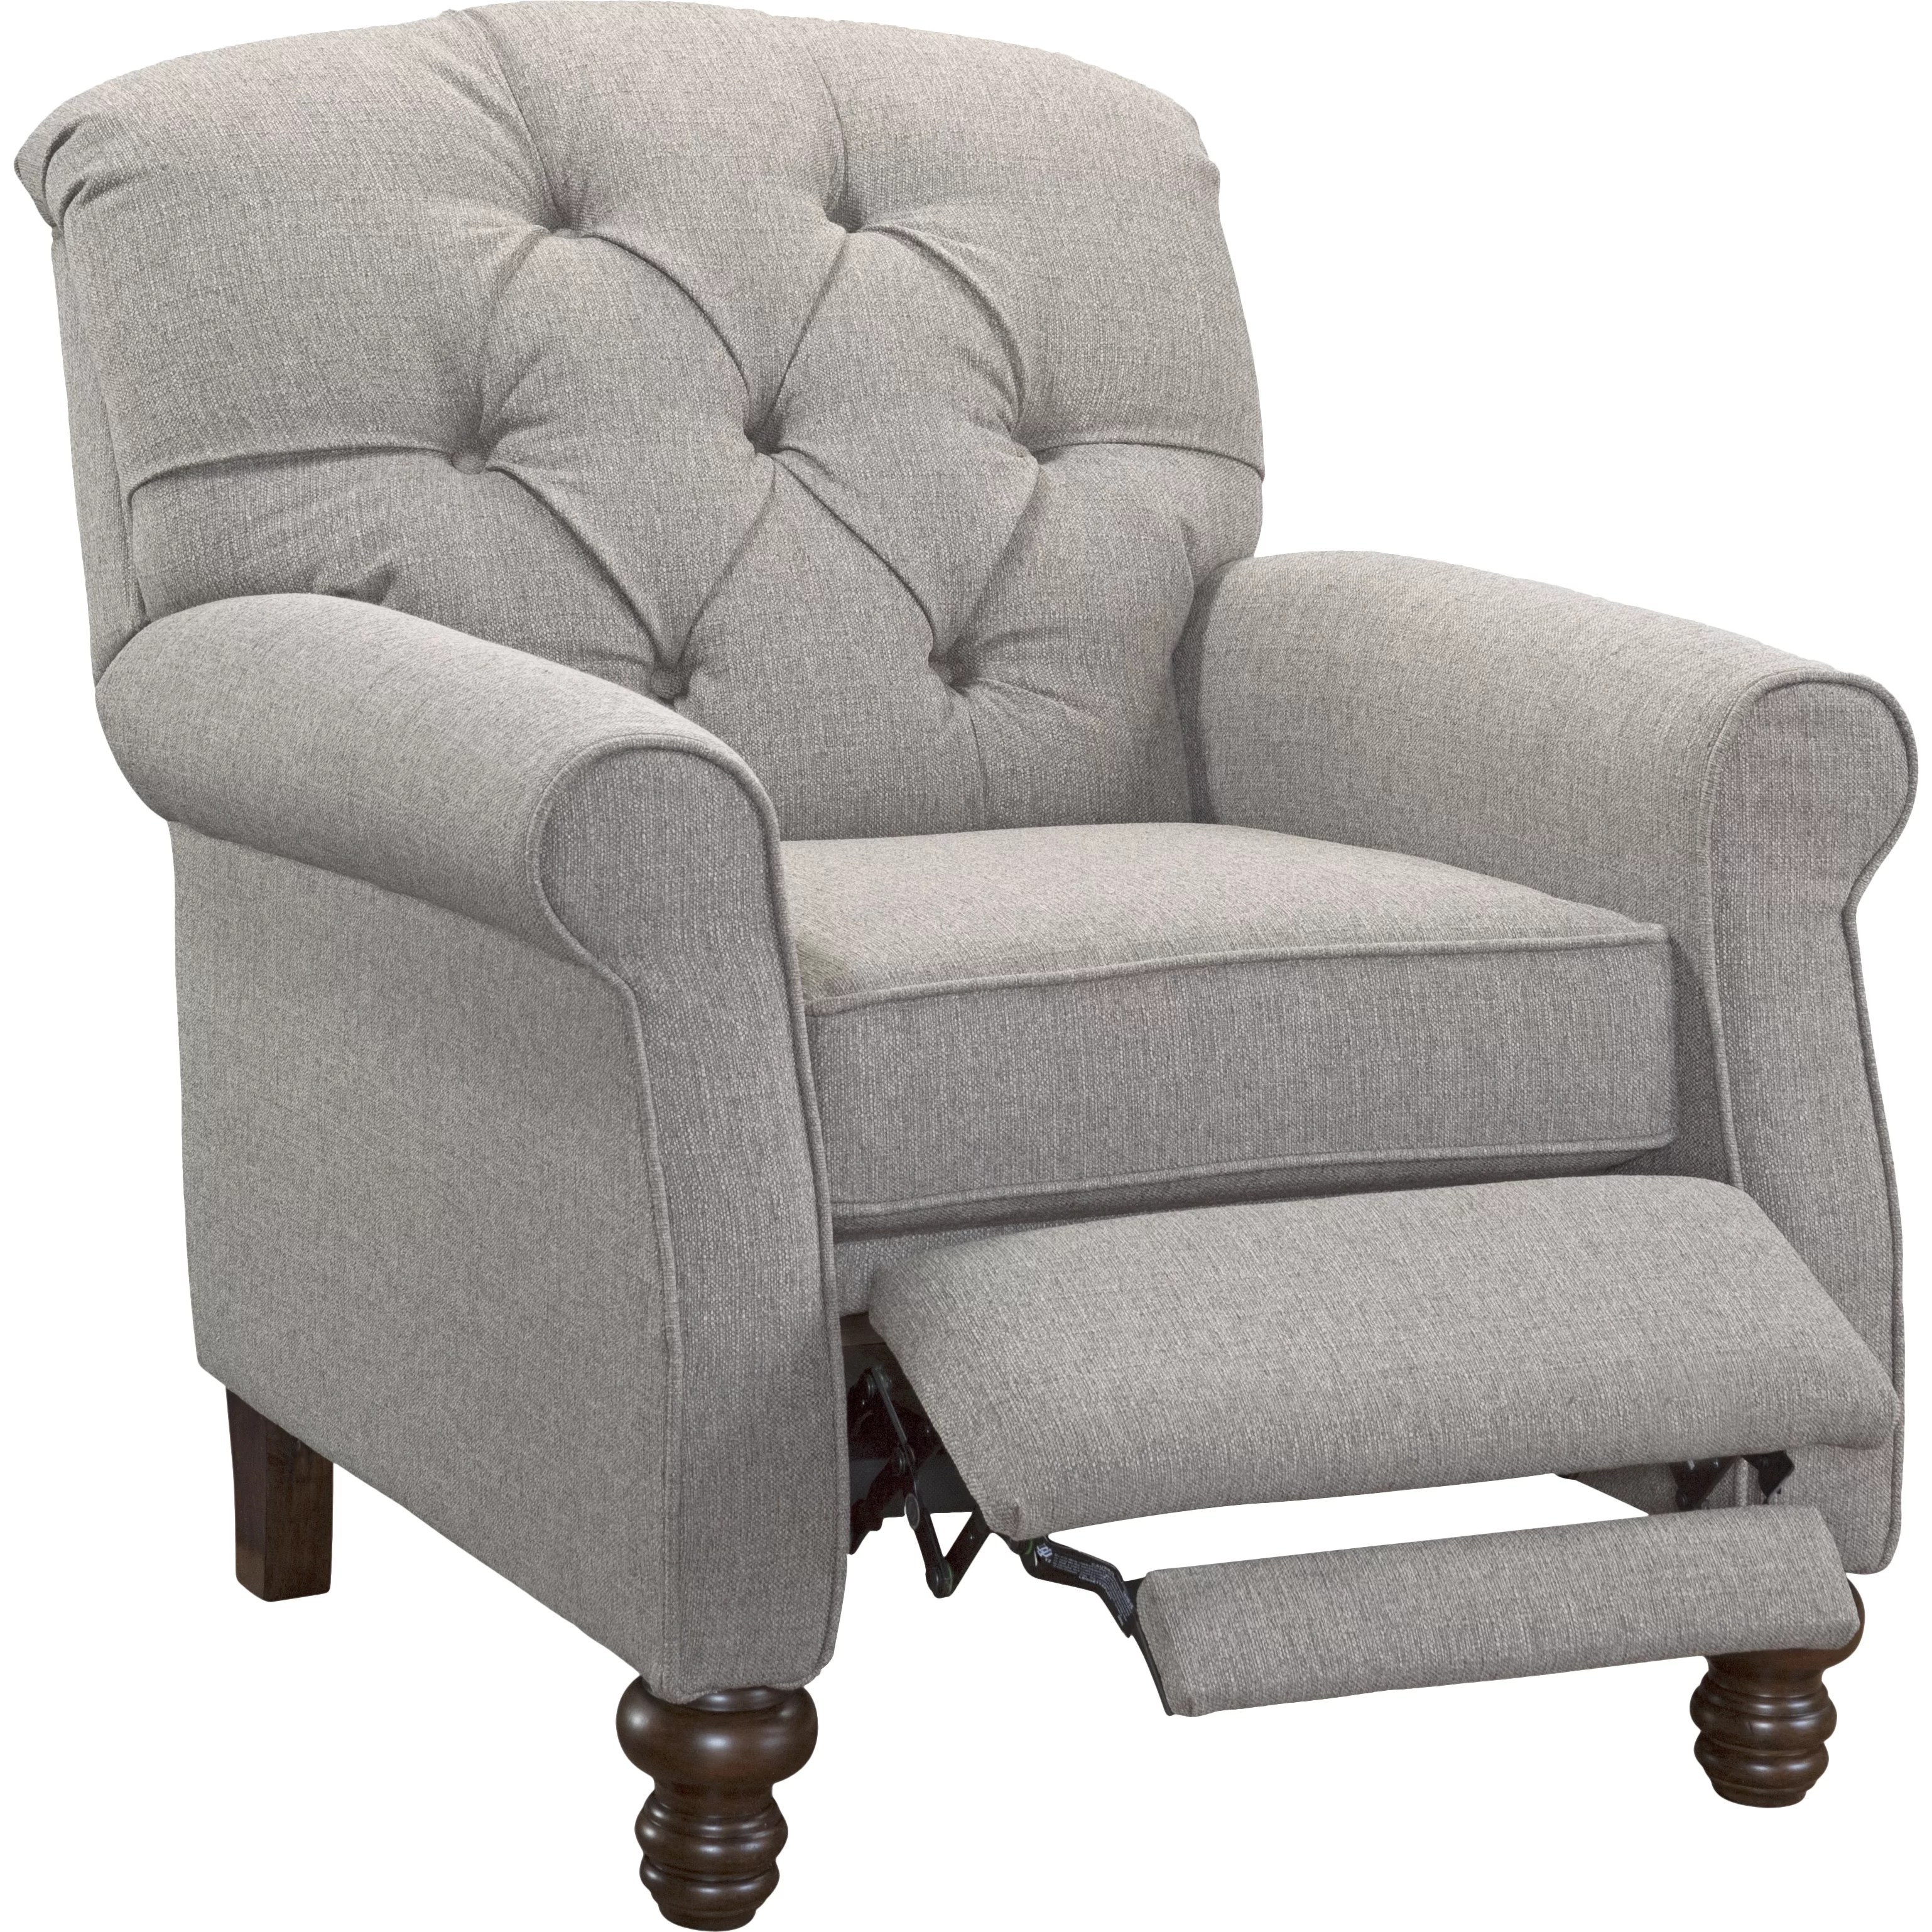 Reclining Chairs Three Posts Williamsport Recliner And Reviews Wayfair